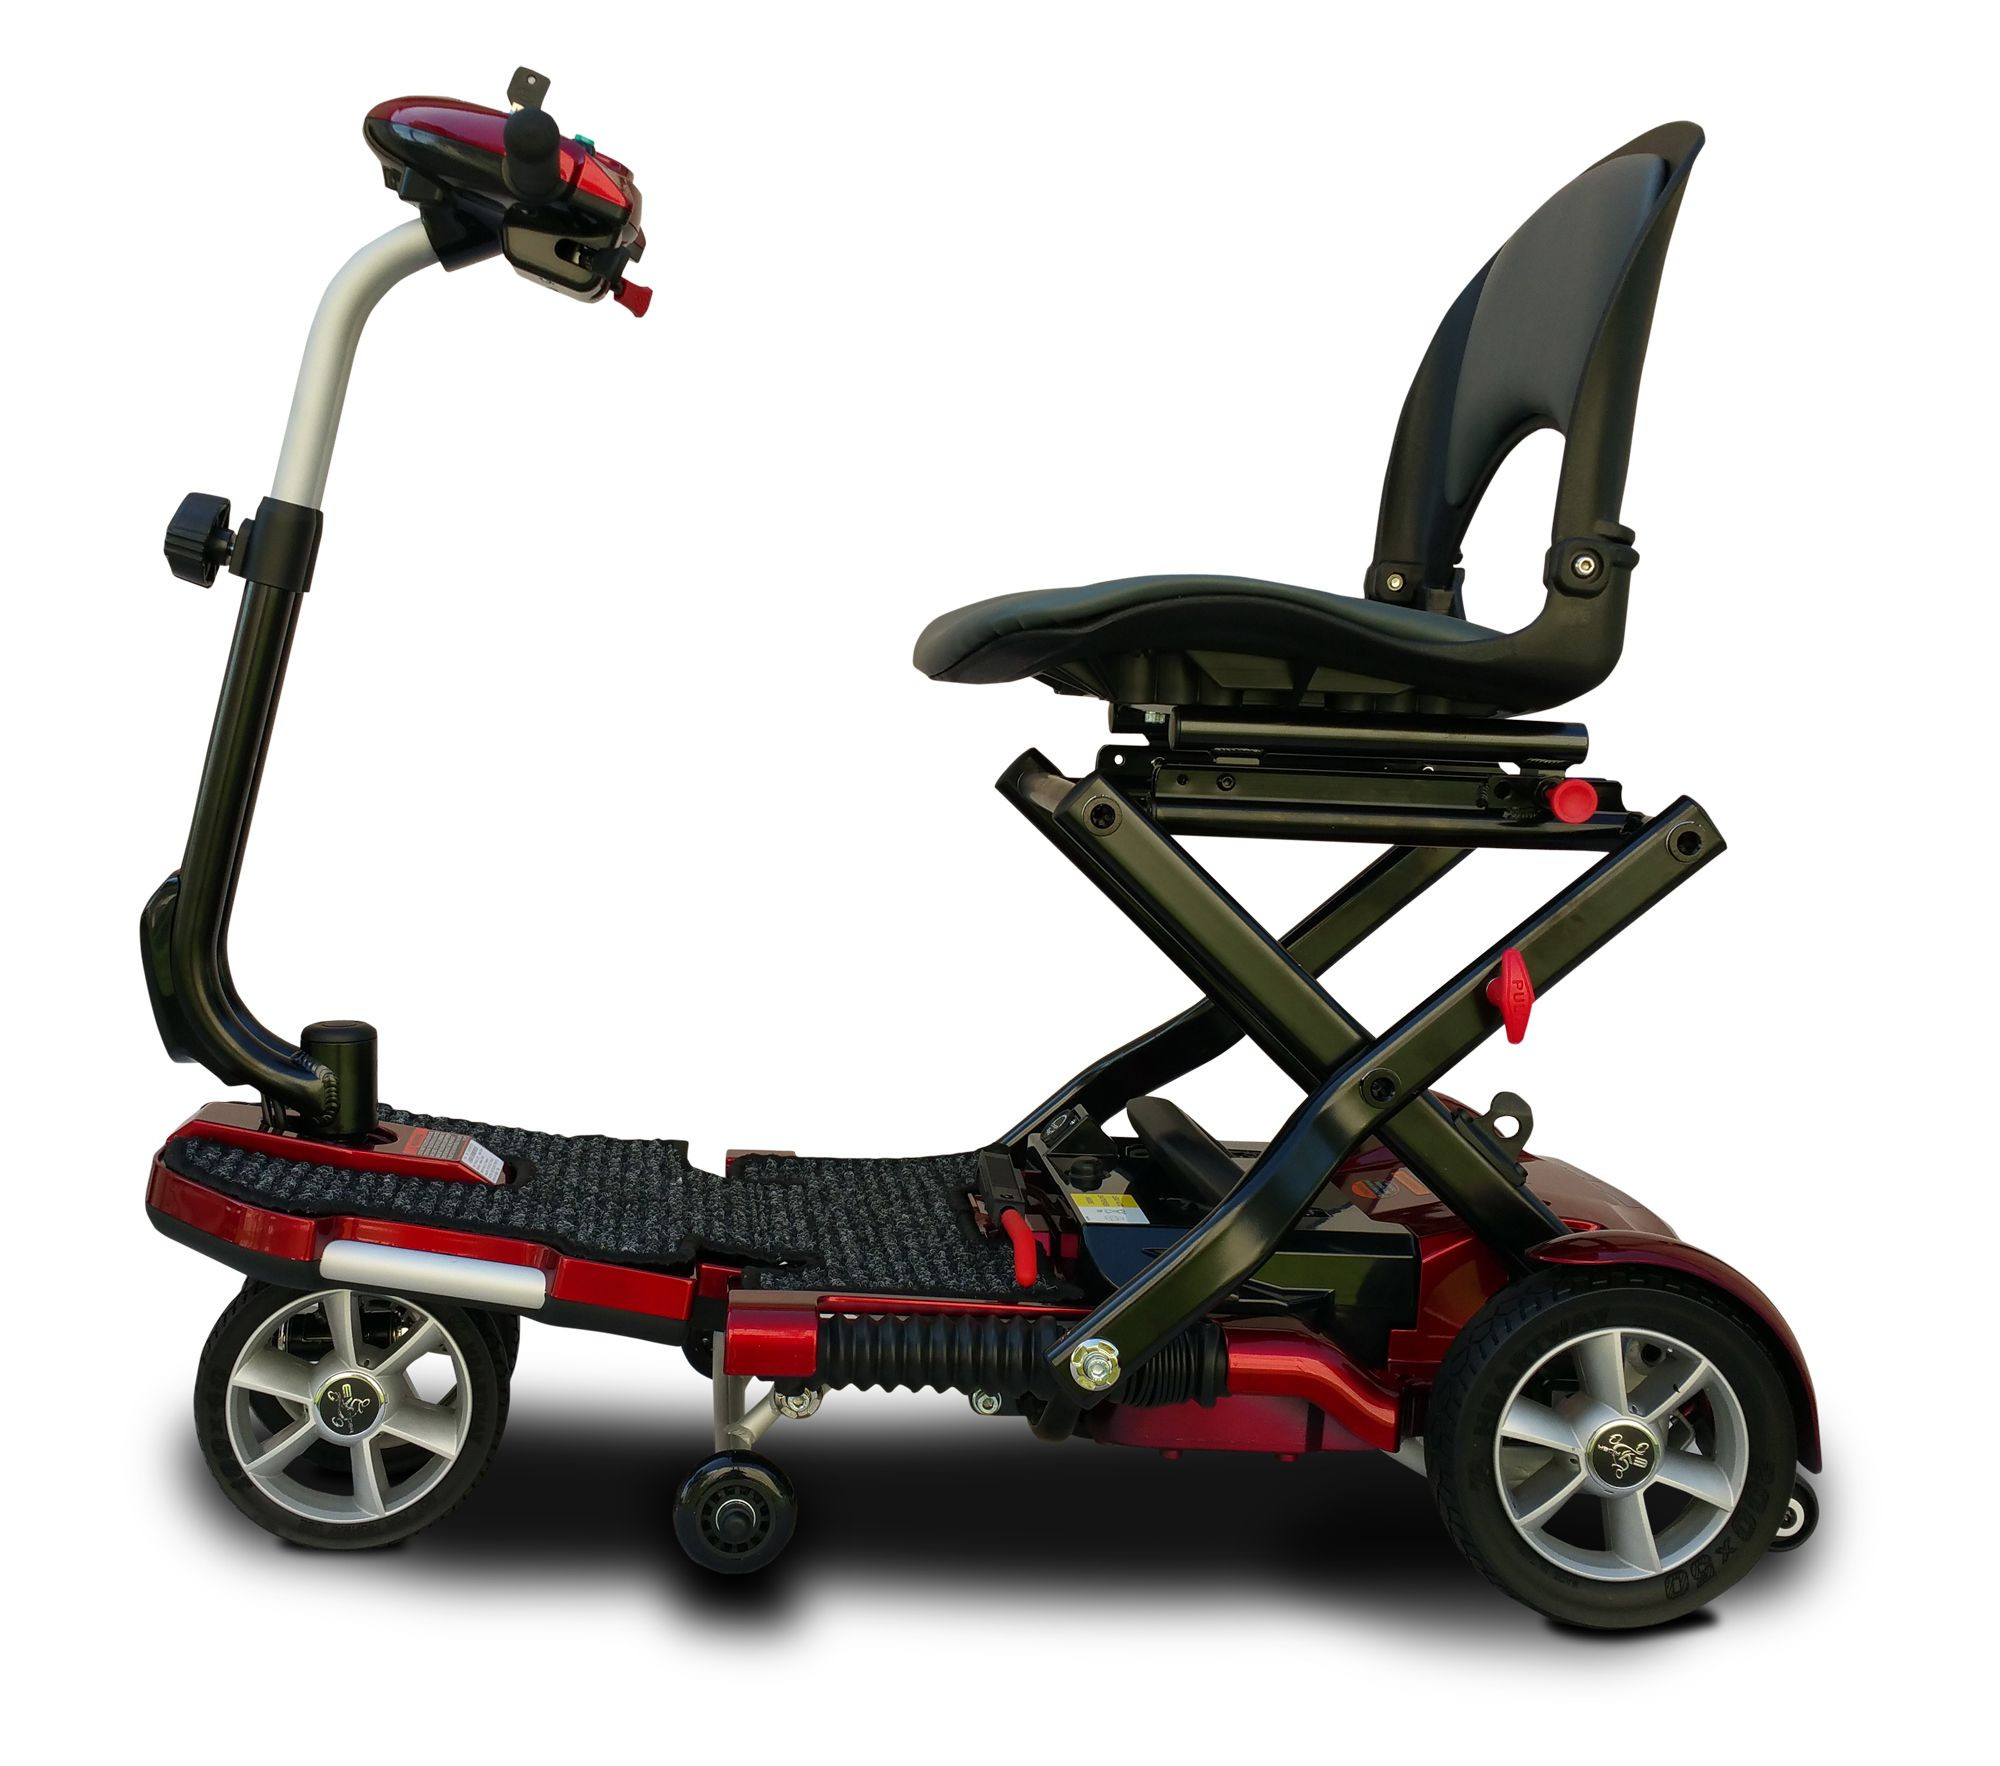 Folding Mobility Scooters for Sale - Manufacturer Direct Pricing